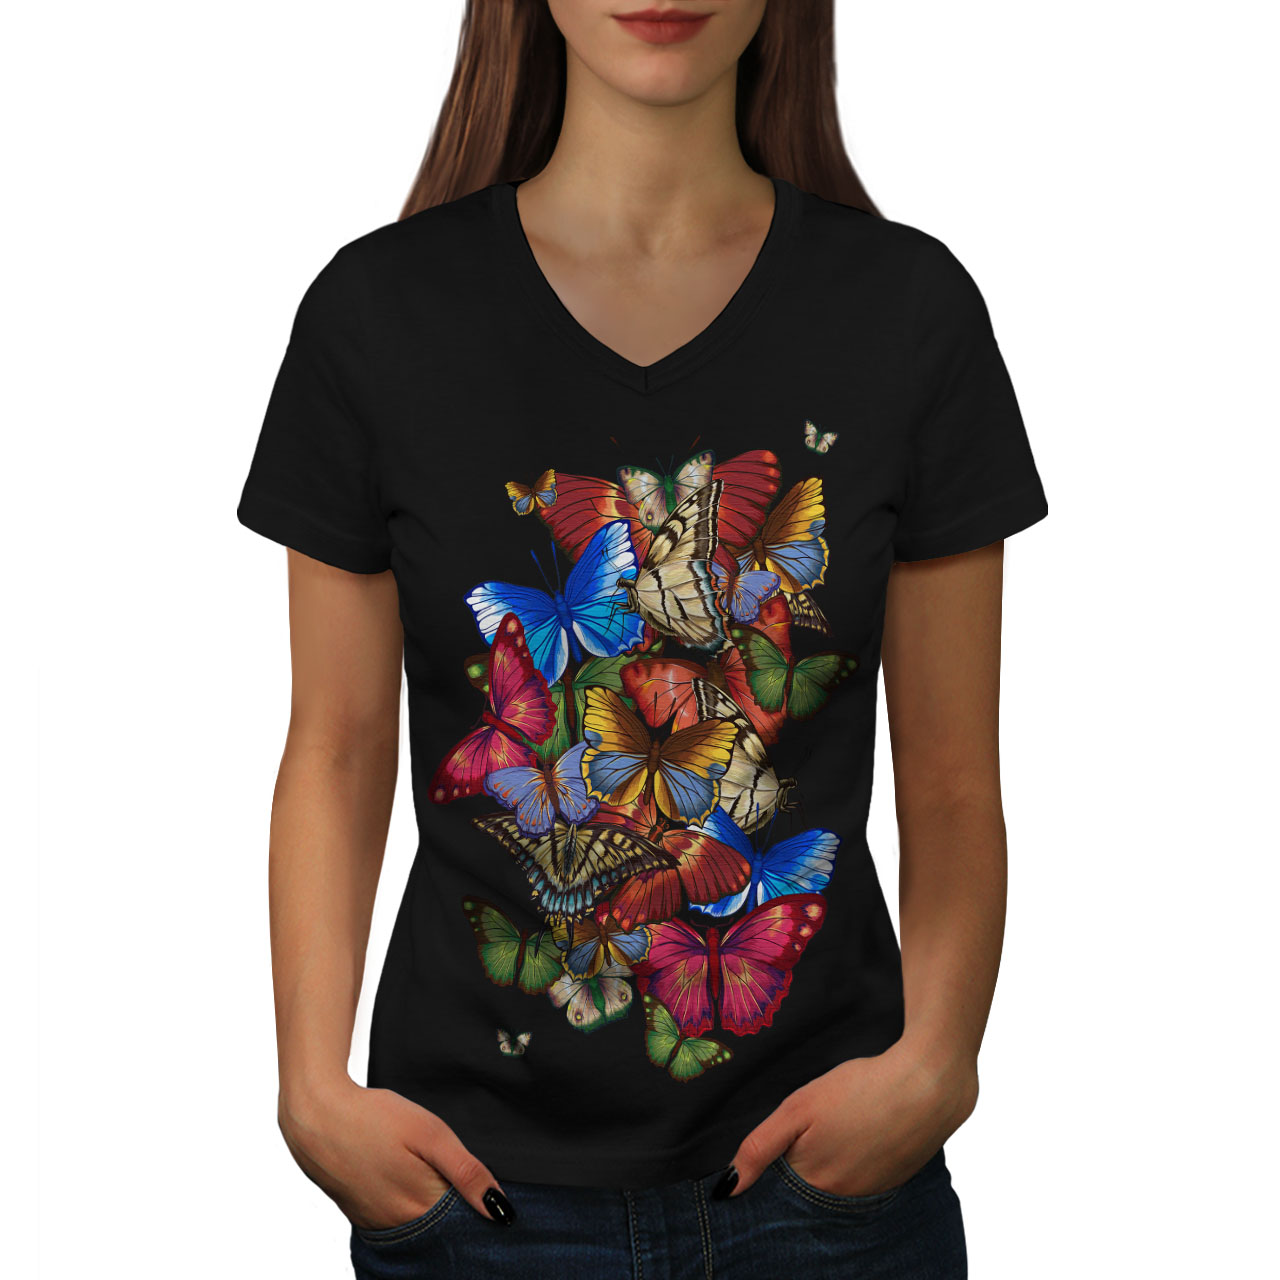 Wellcoda-Colorful-Butterfly-Womens-V-Neck-T-shirt-Freedom-Graphic-Design-Tee